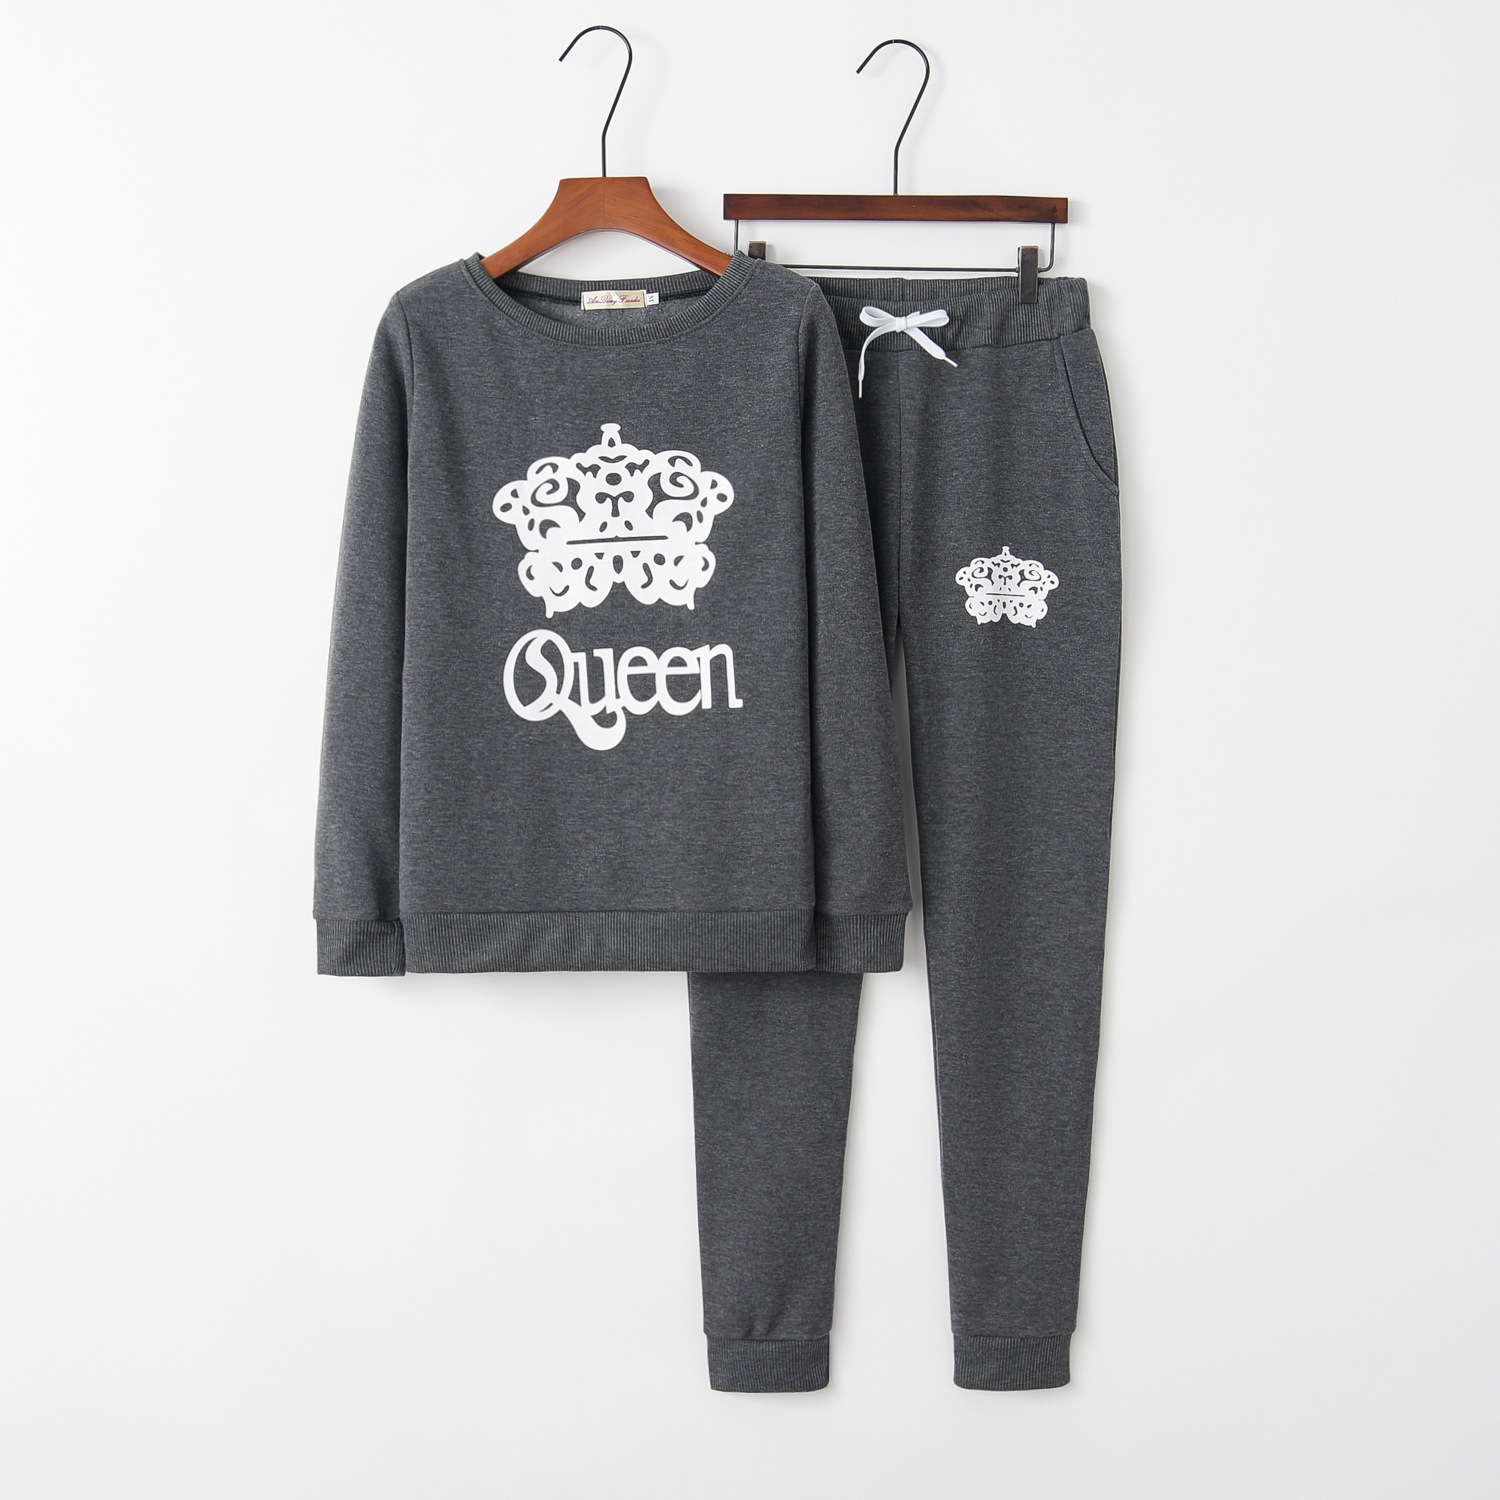 Print Queen 2020 New Design Fashion Hot Sale Suit Set Women Tracksuit Two-piece Style Outfit Sweatshirt Sport Wear